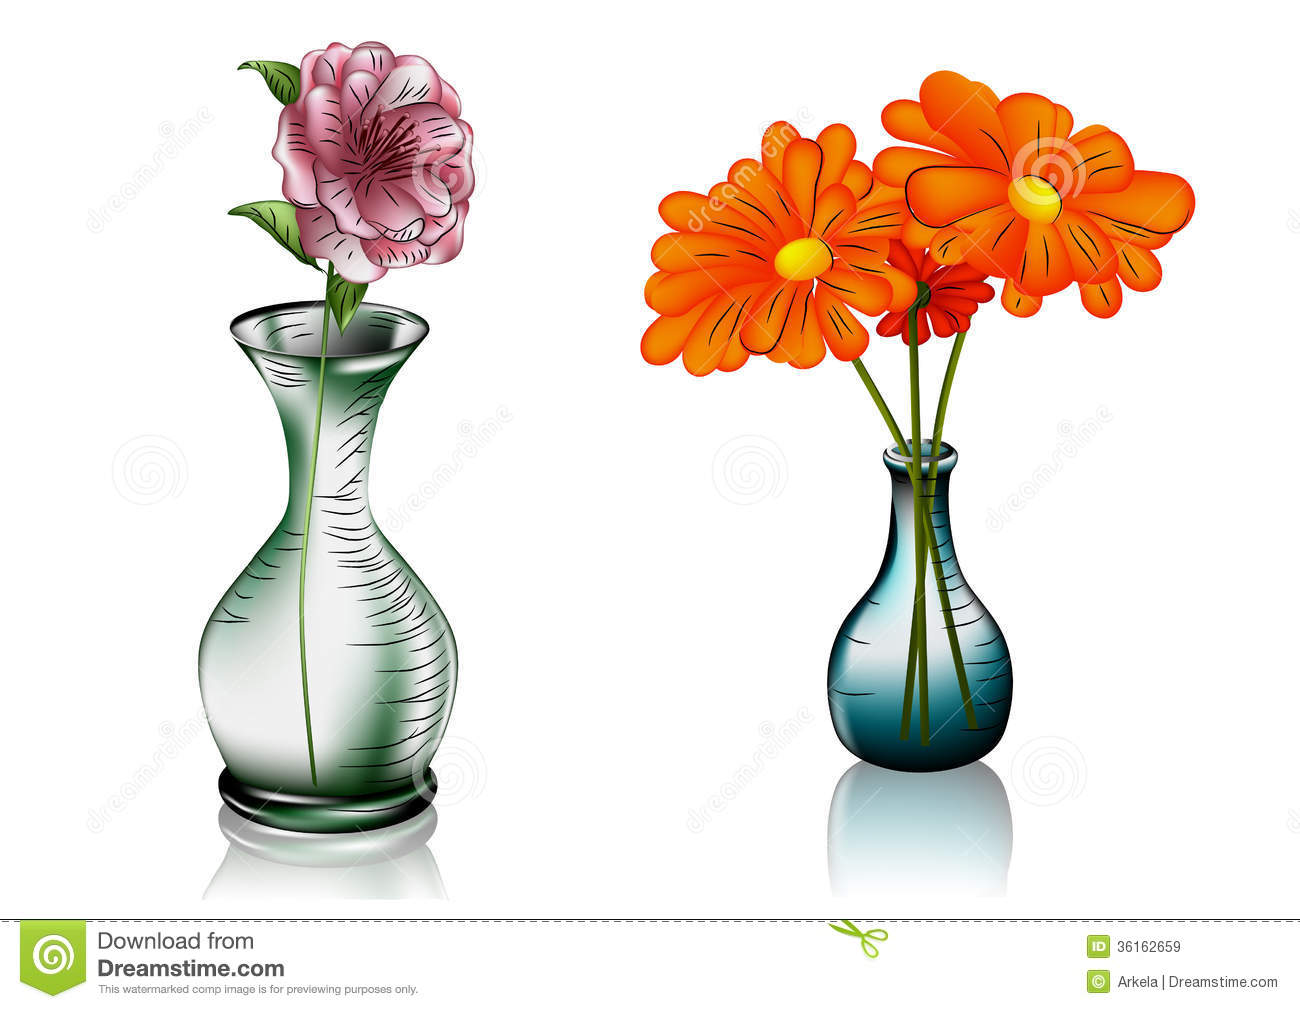 deux vases avec des fleurs images libres de droits image 36162659. Black Bedroom Furniture Sets. Home Design Ideas